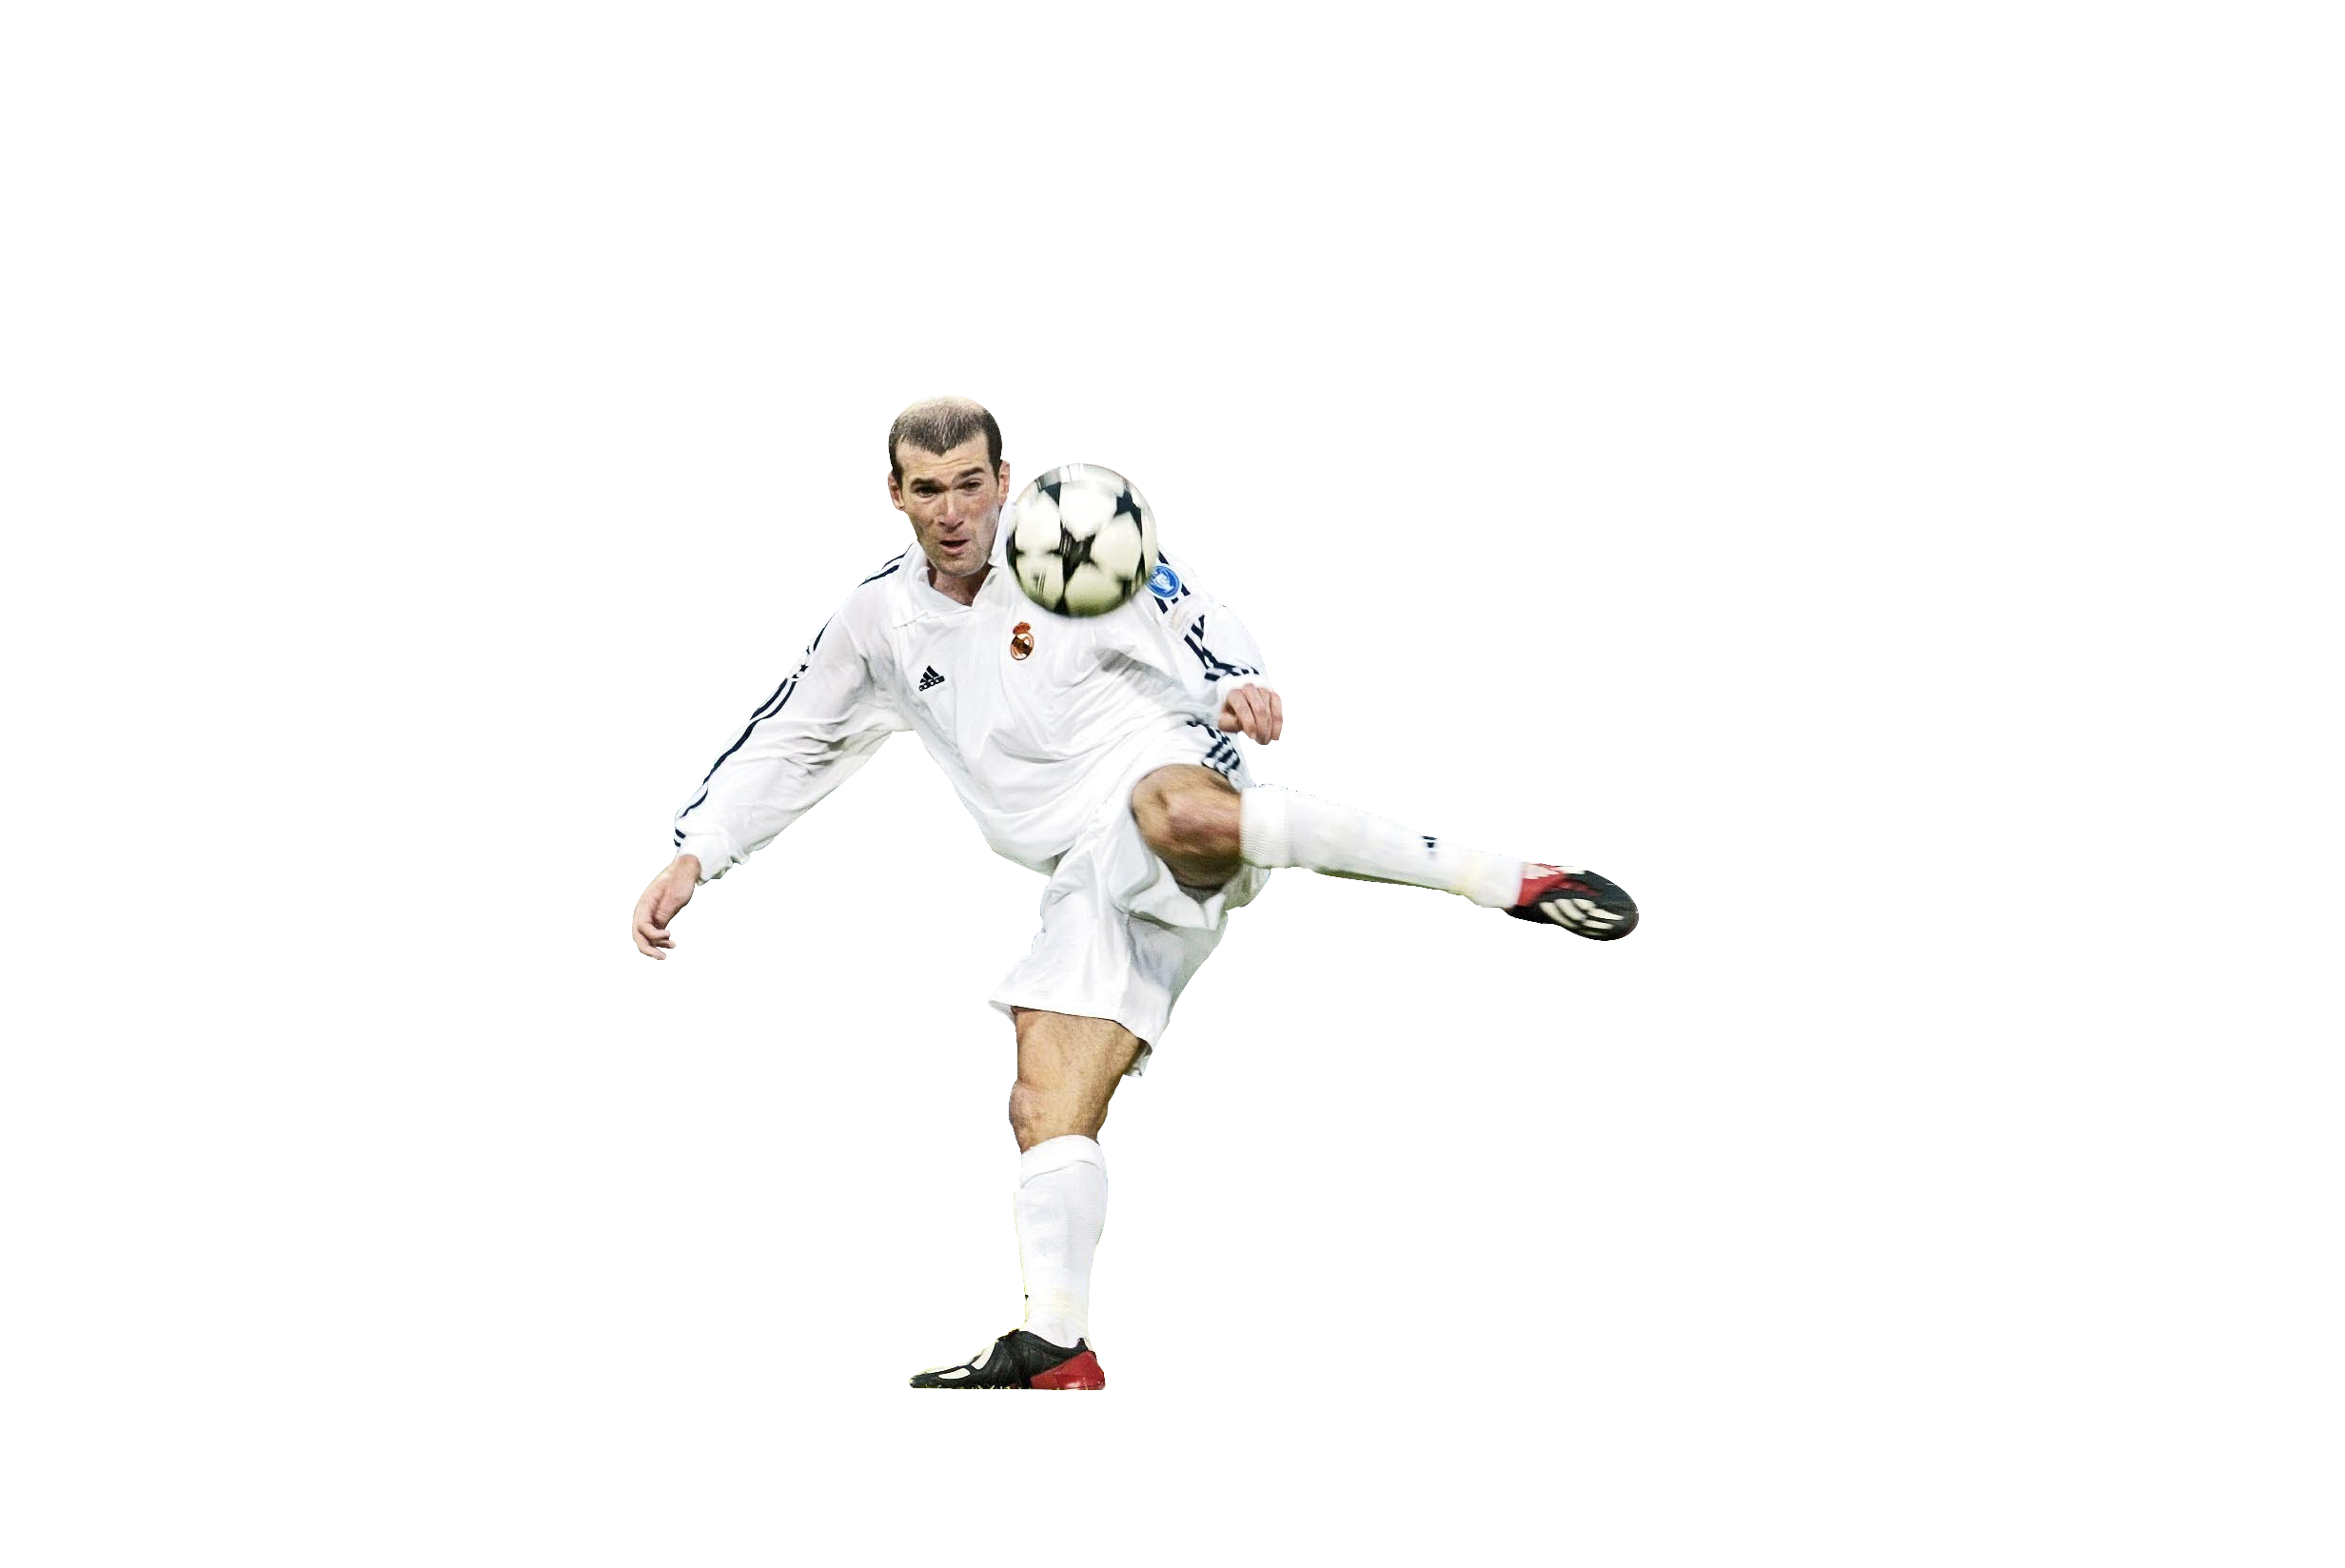 Zidane png by StarGrafDesign Zidane png by StarGrafDesign - Zidane PNG